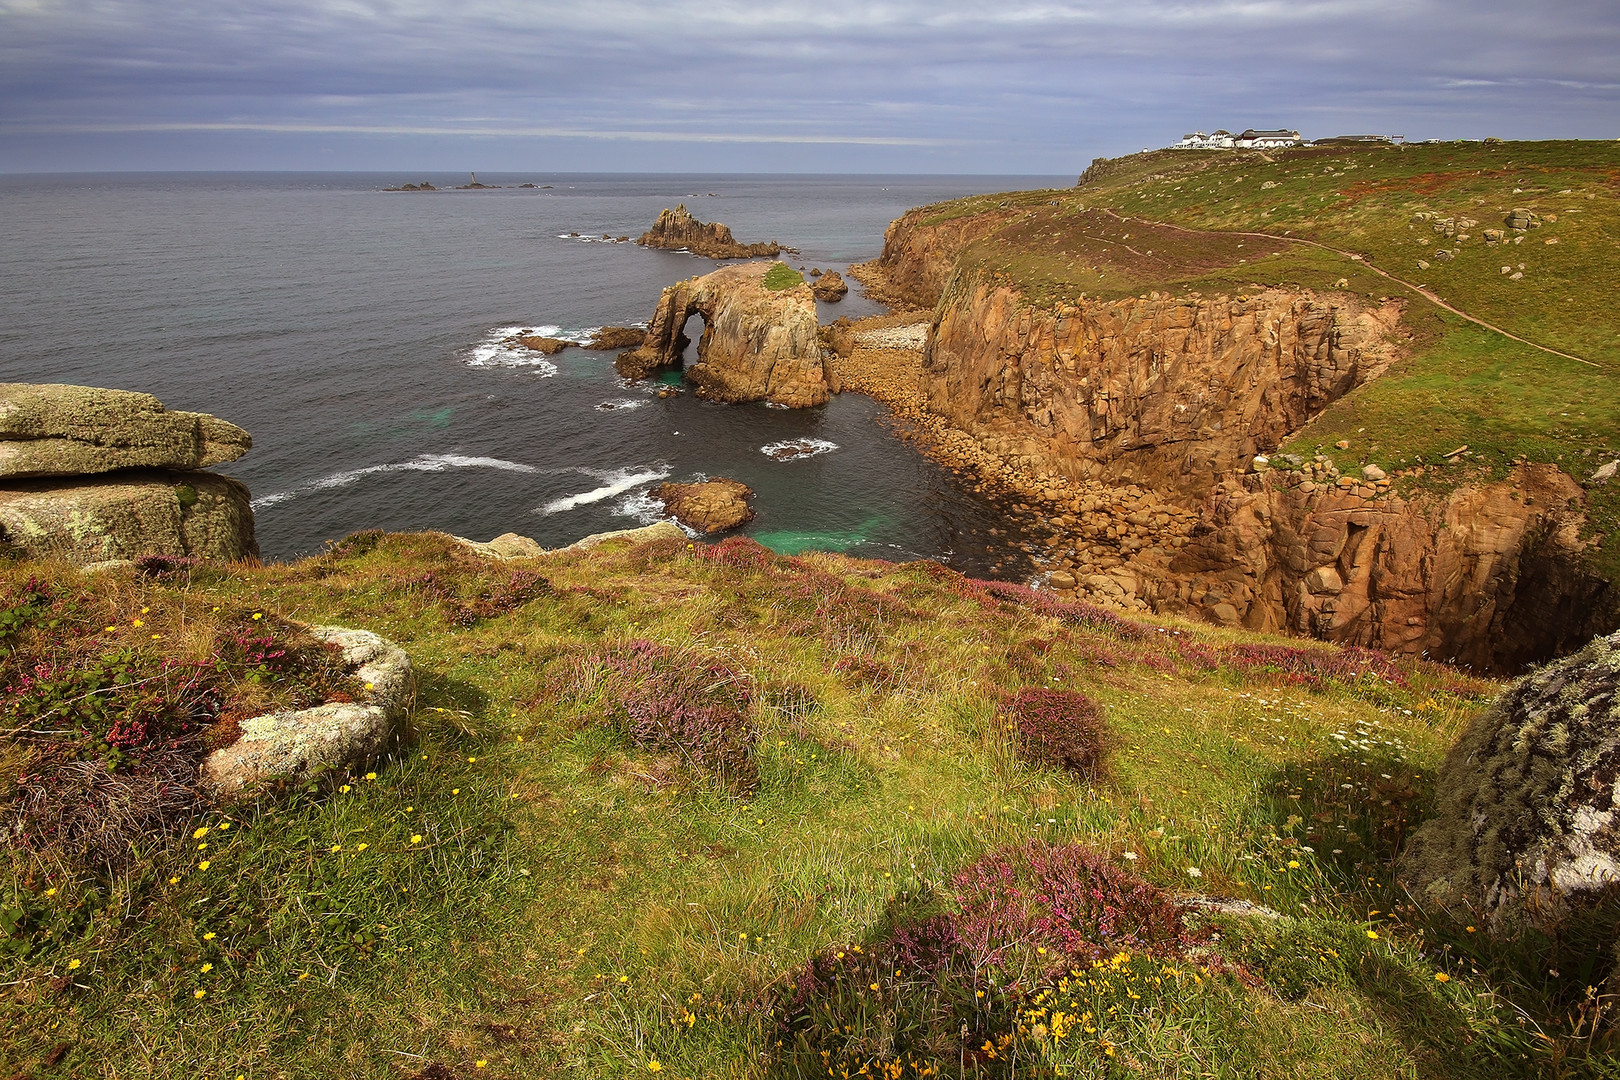 Land's end and Enys Dodman suggestions